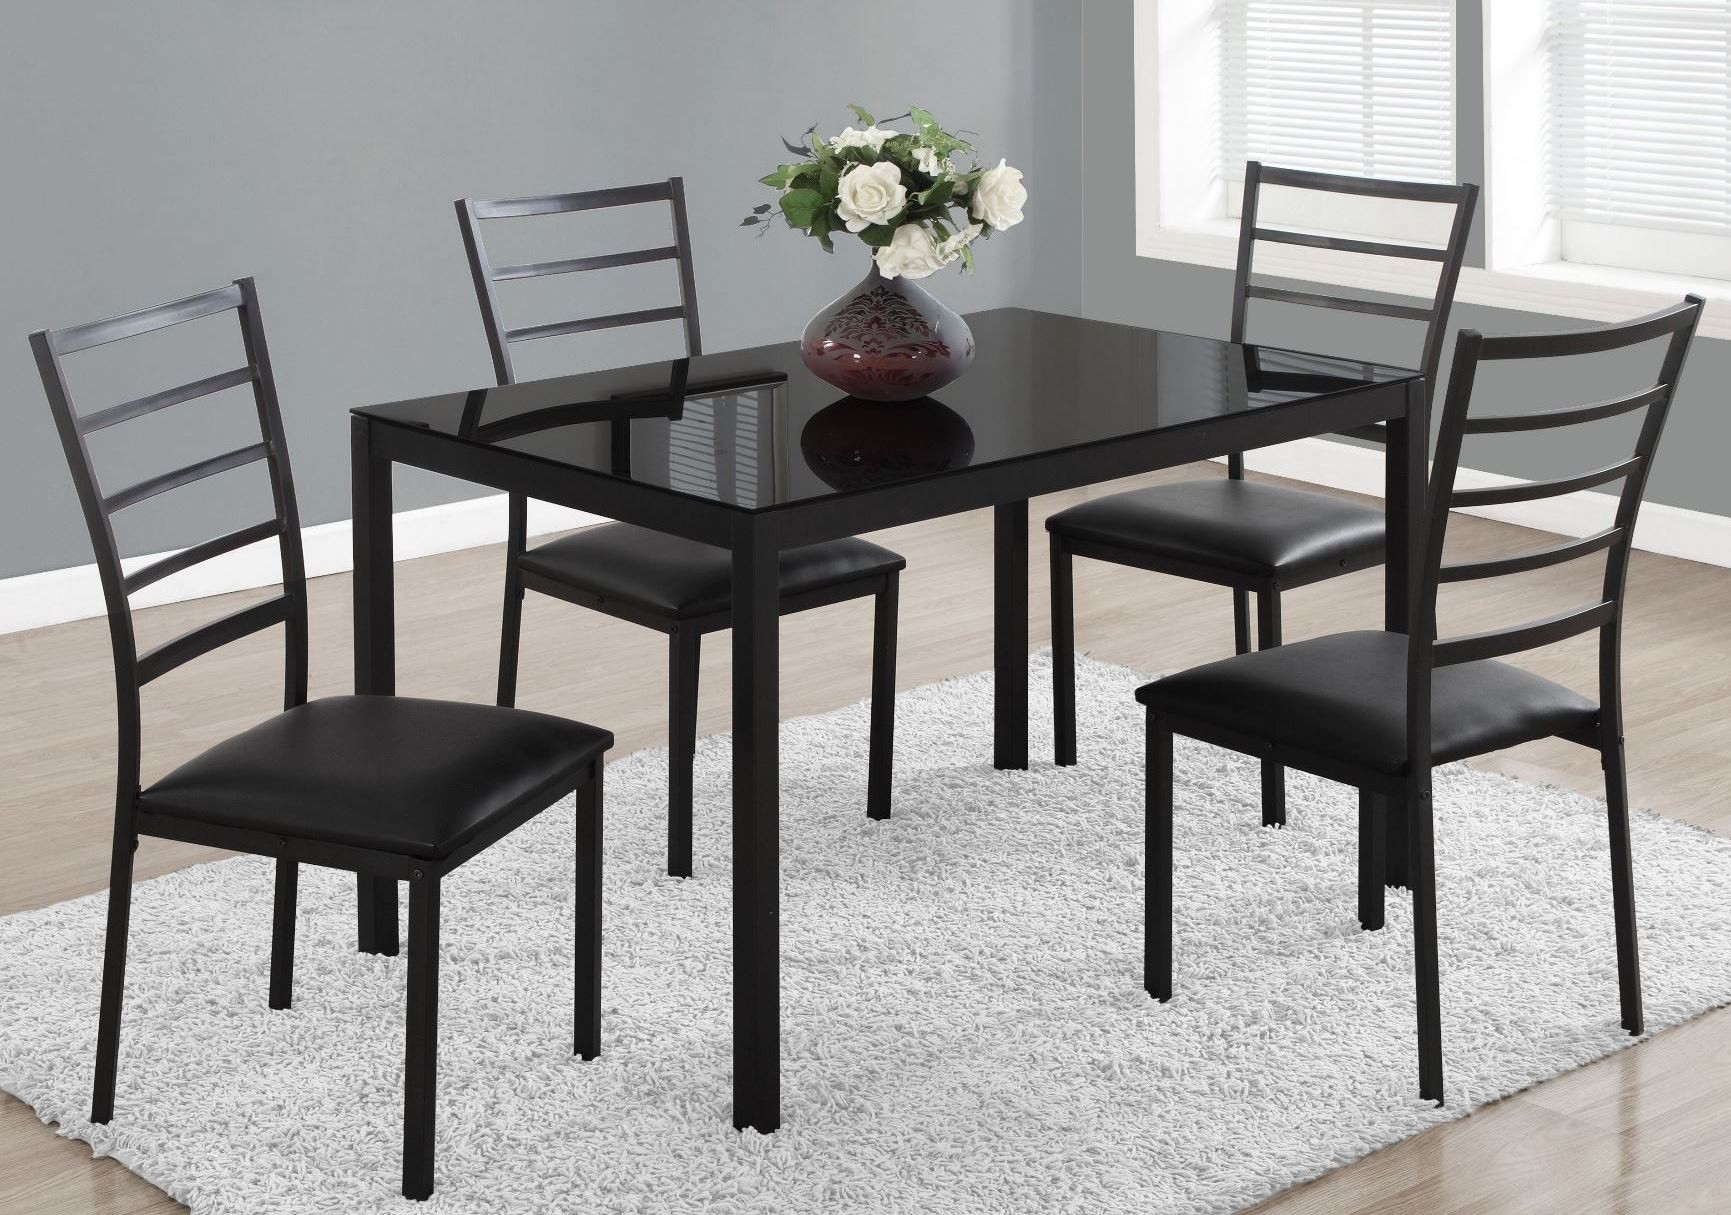 metal dining room sets | Black Metal 5 Piece Rectangular Dining Room Set, 1025, Monarch